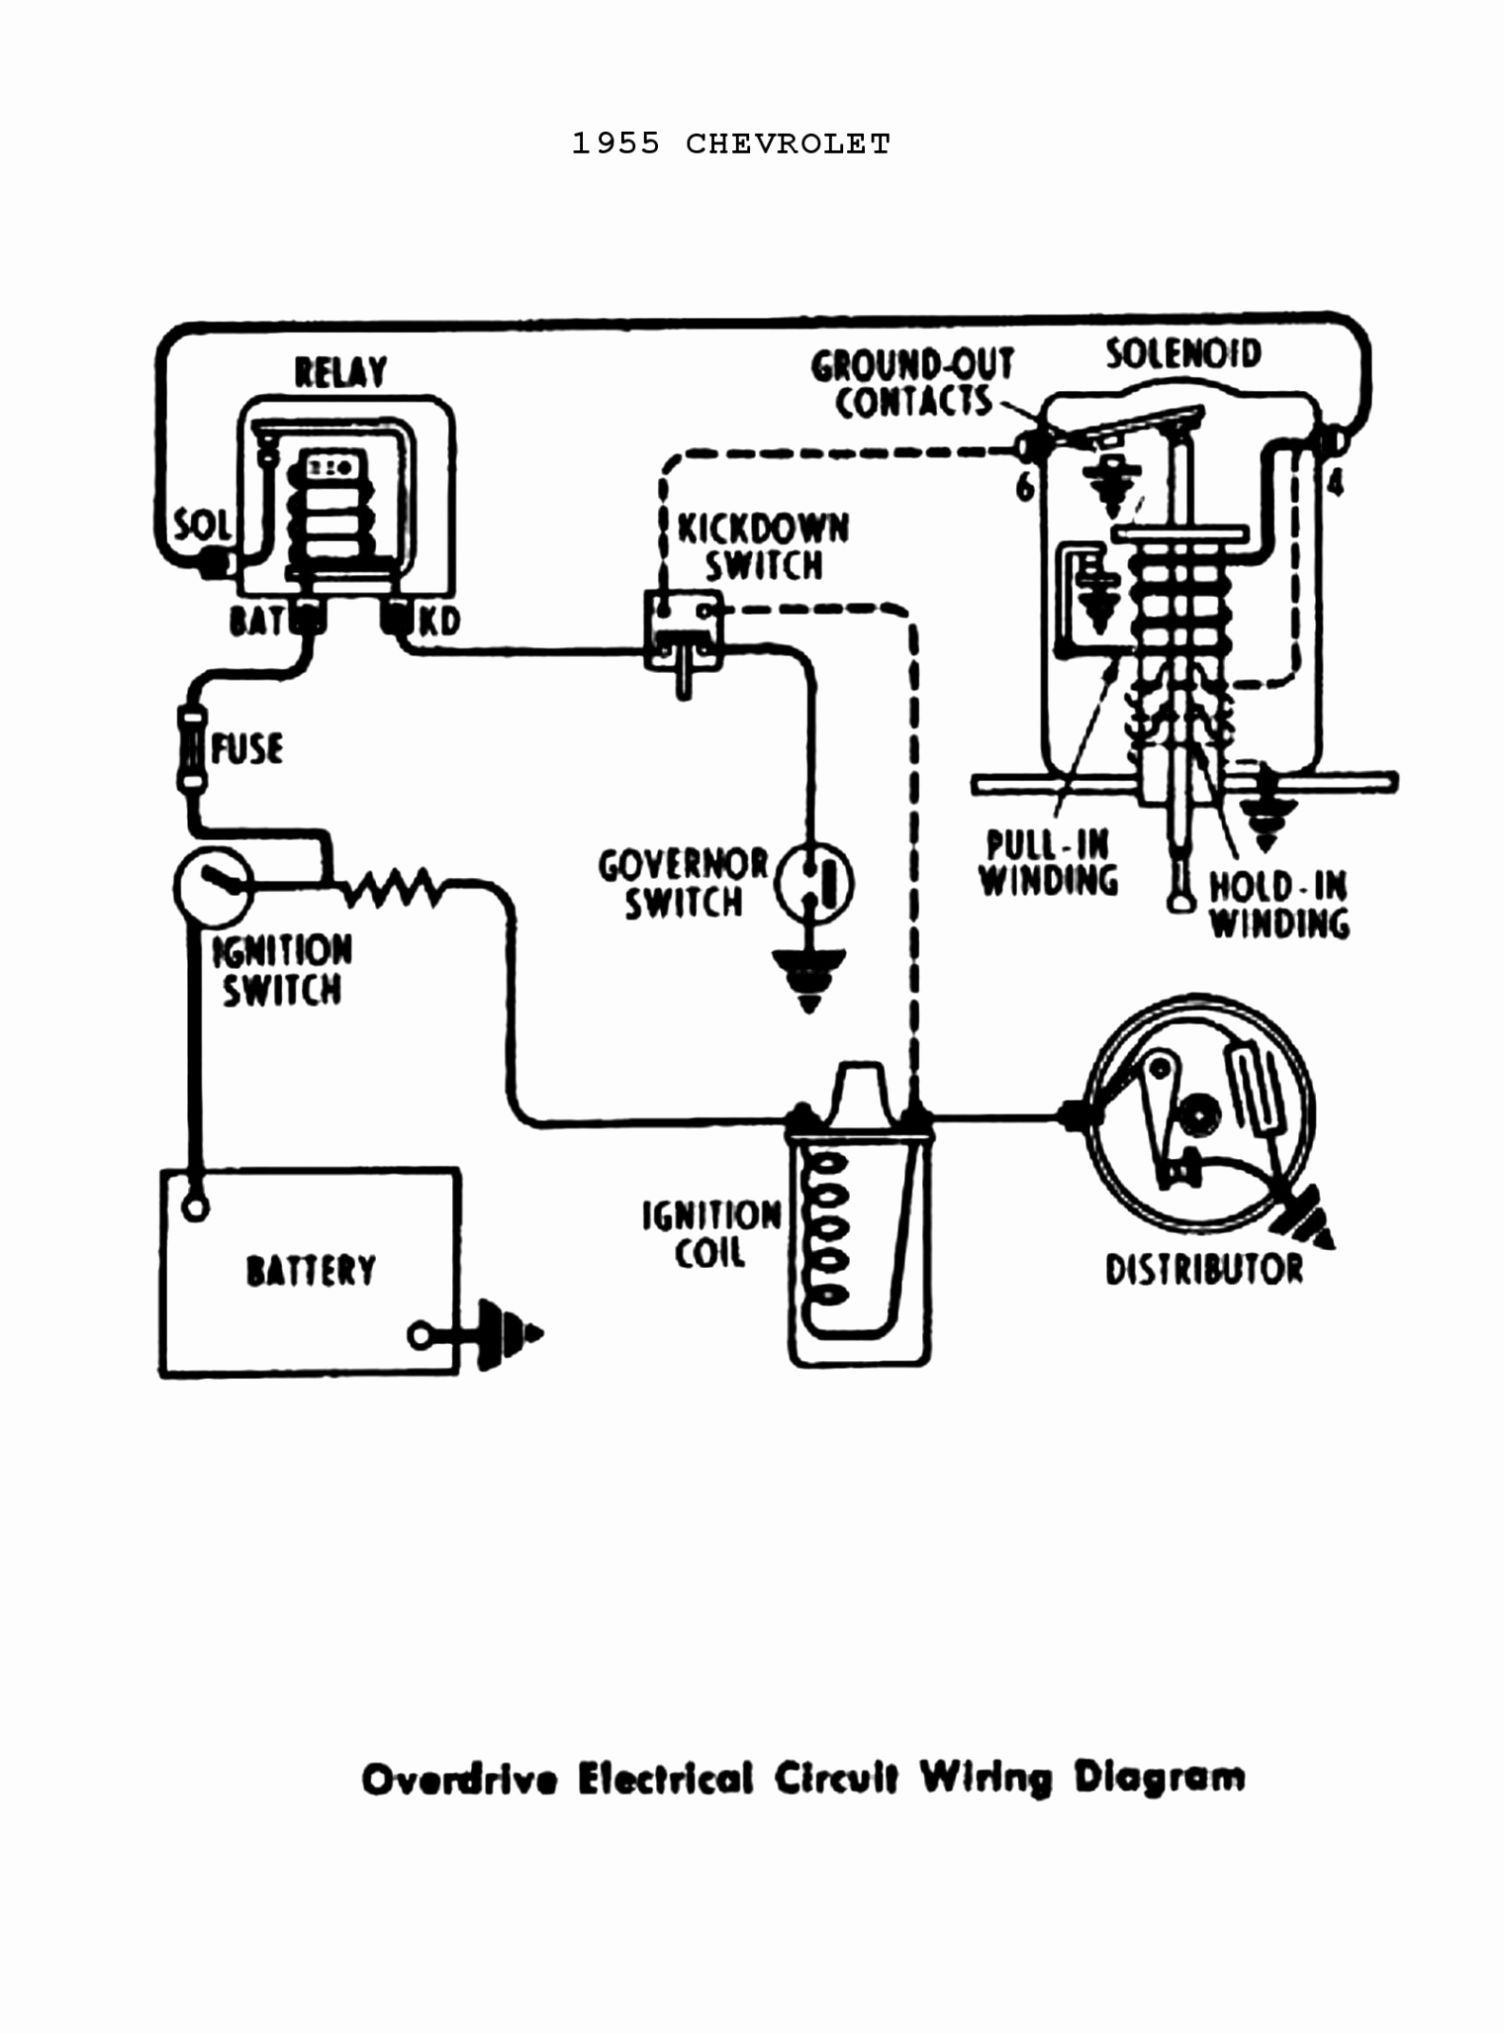 hight resolution of unique motorola alternator wiring diagram john deere diagrams digramssample diagramimages wiringdiagramsample wiringdiagram